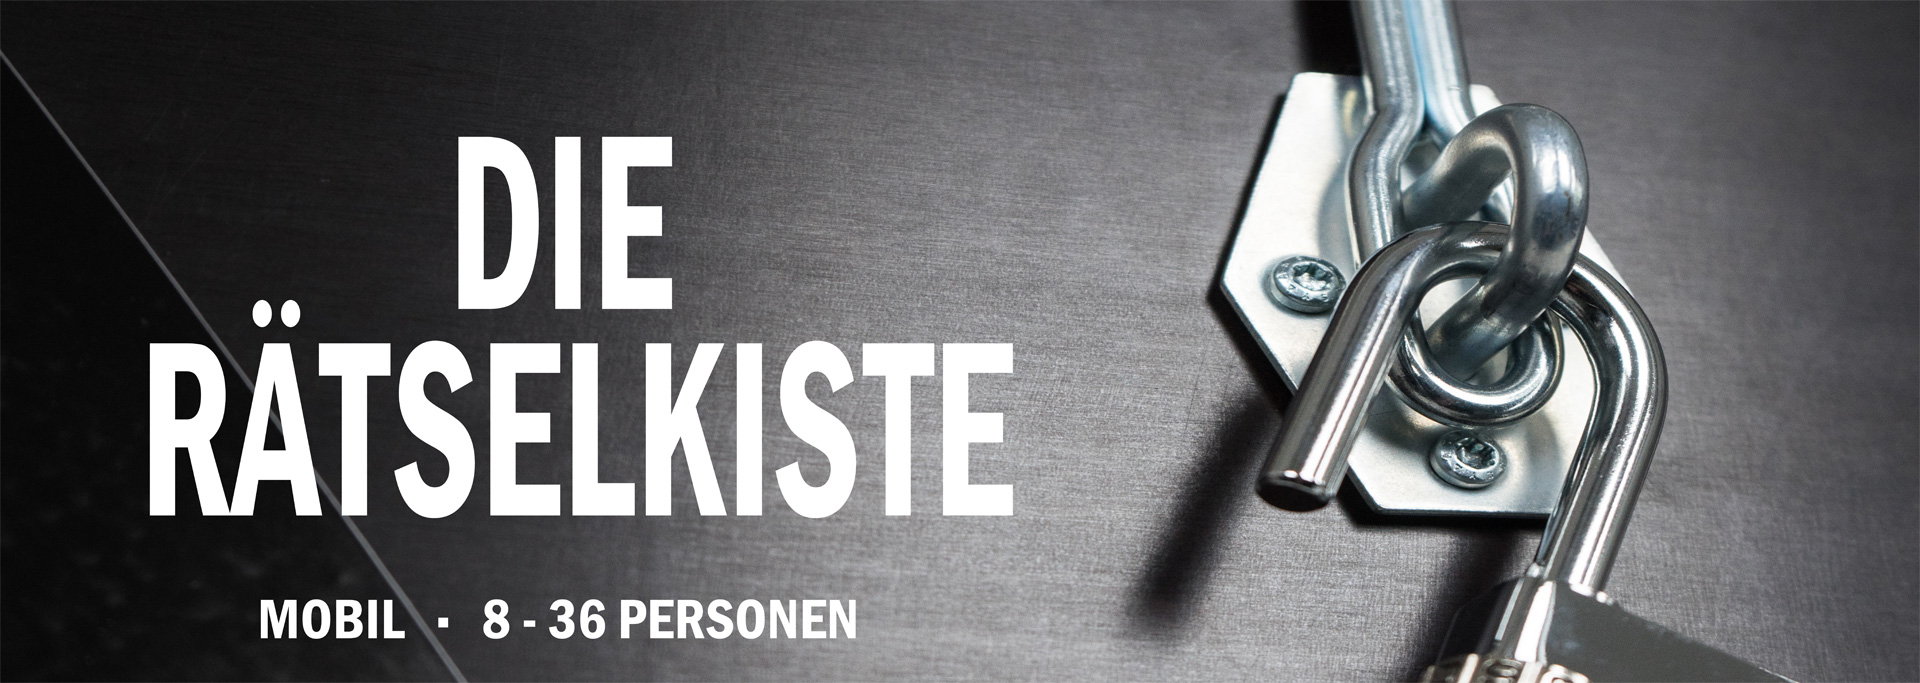 die raetselkiste room escape challenge leipzig mobiles escape game